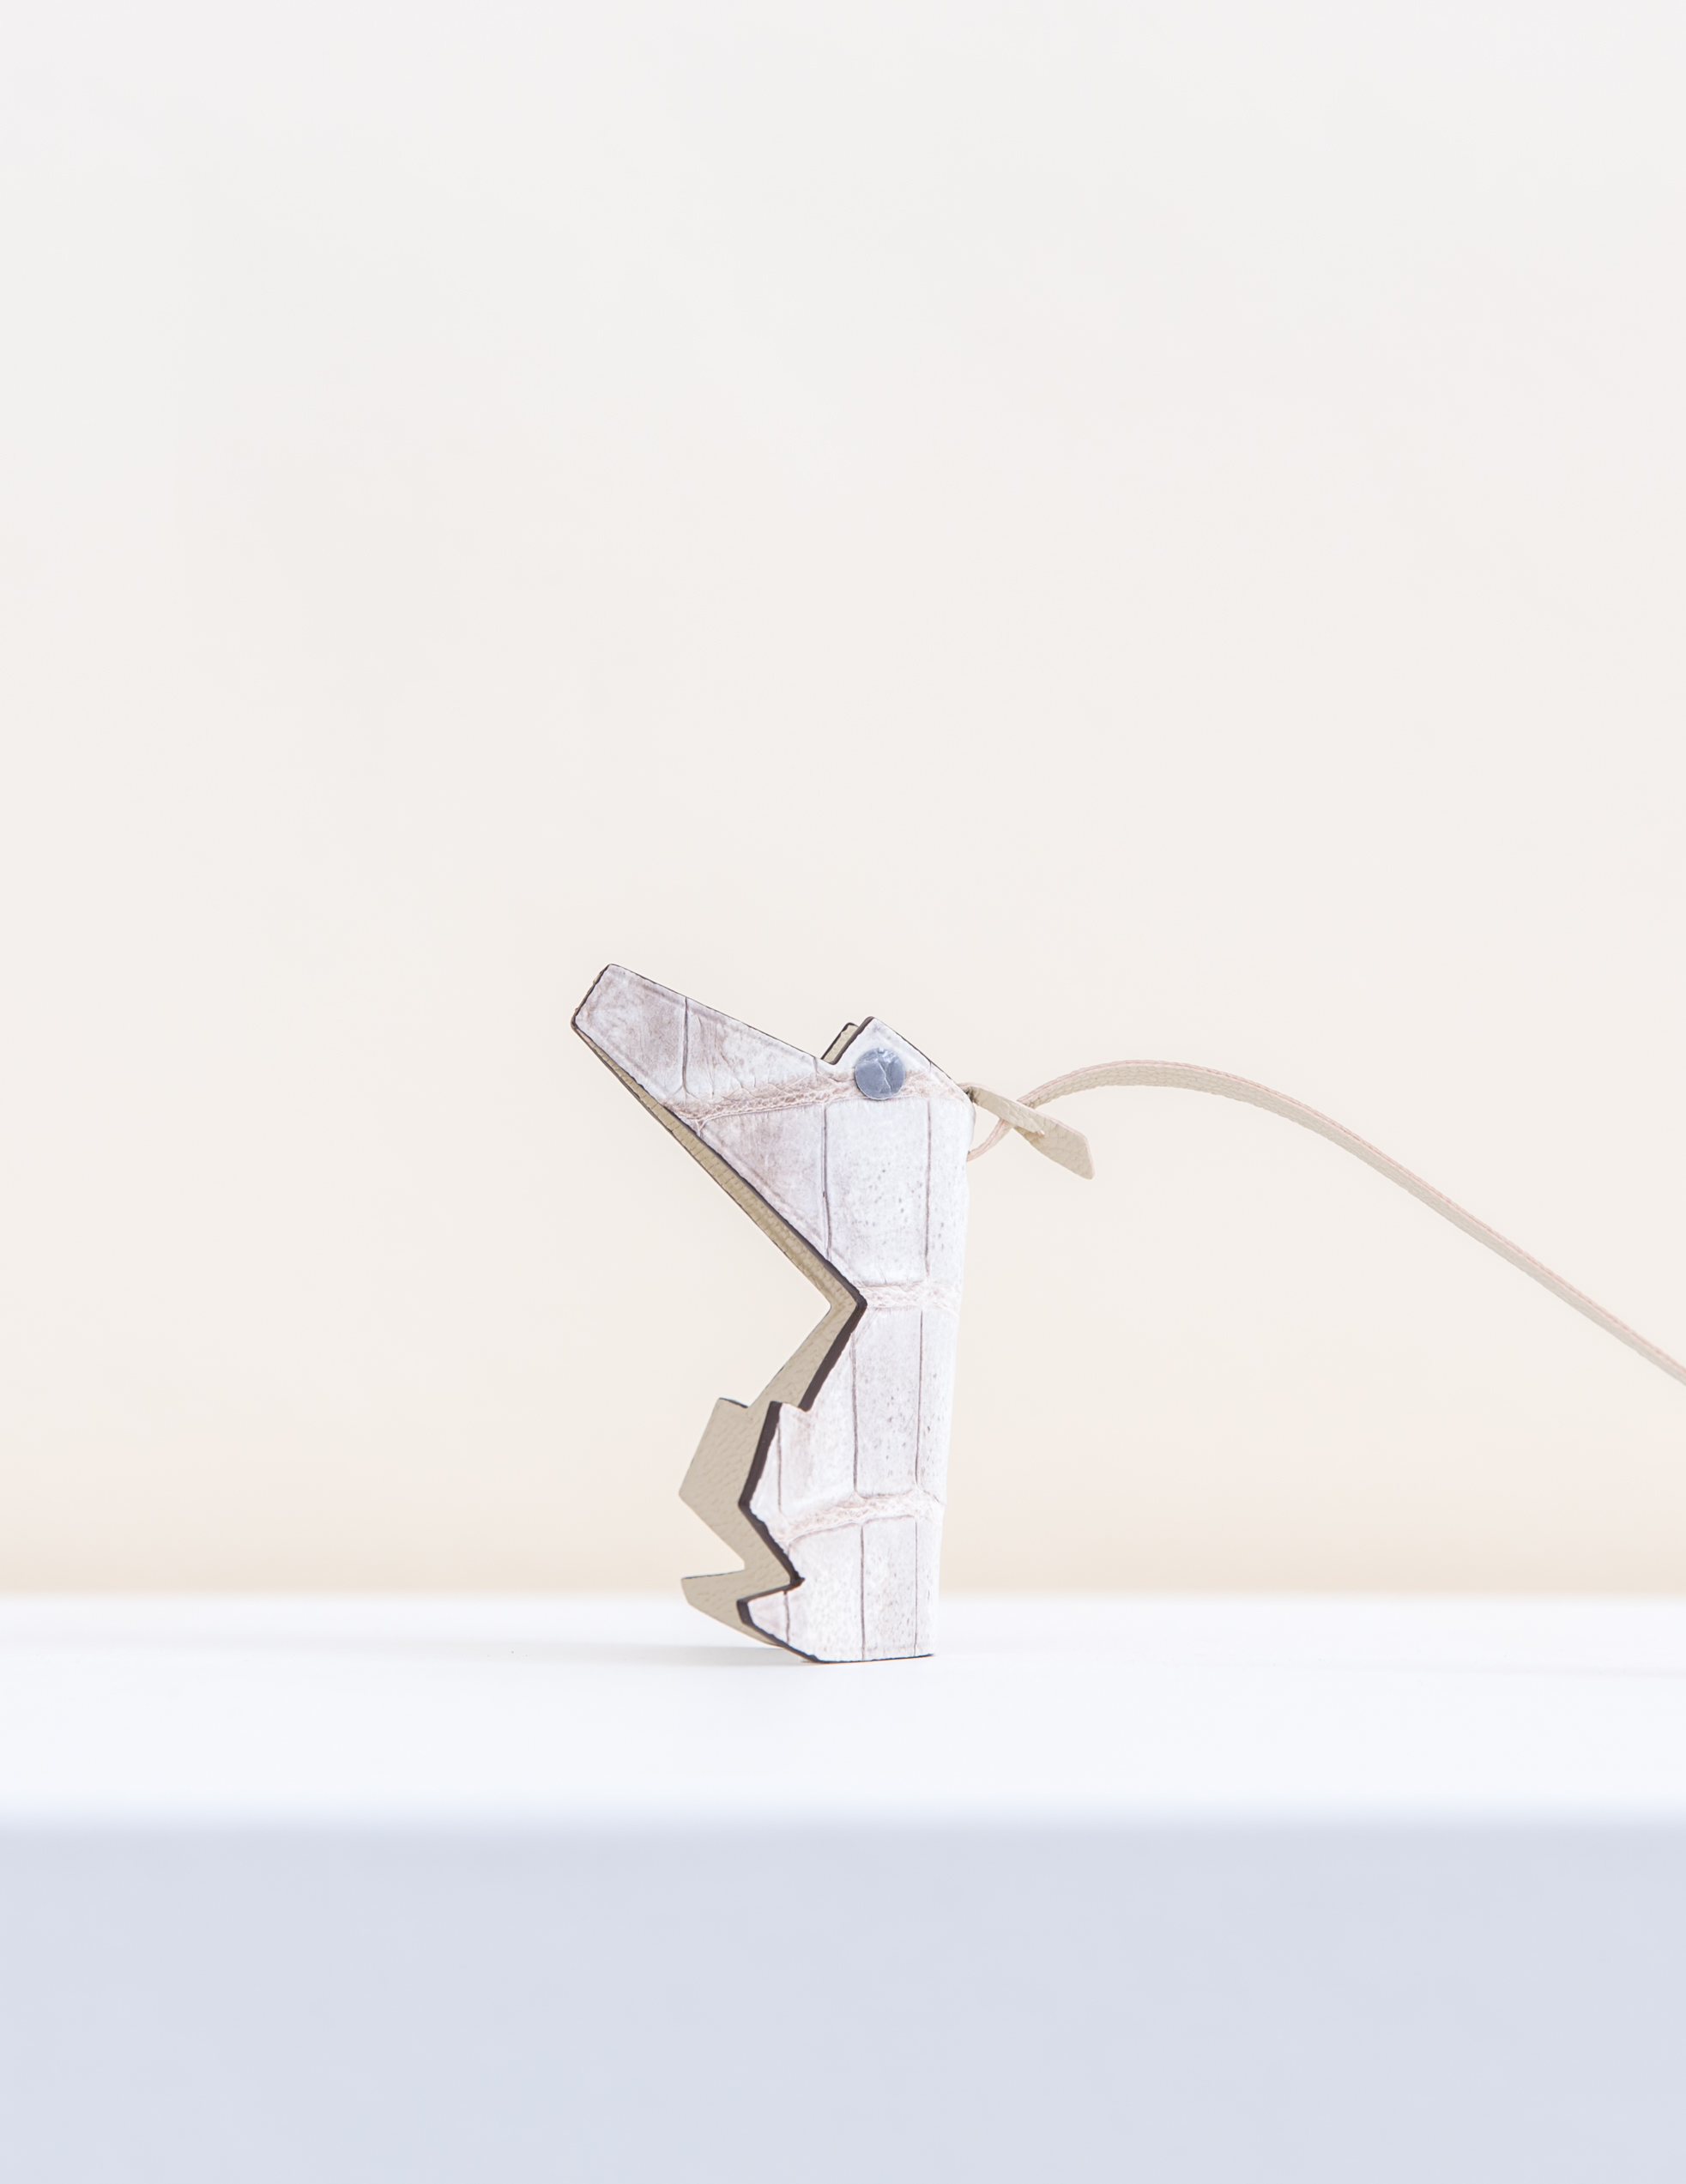 Mr Croco Bag Charm - White/Brown by Chance Mystère on curated-crowd.com